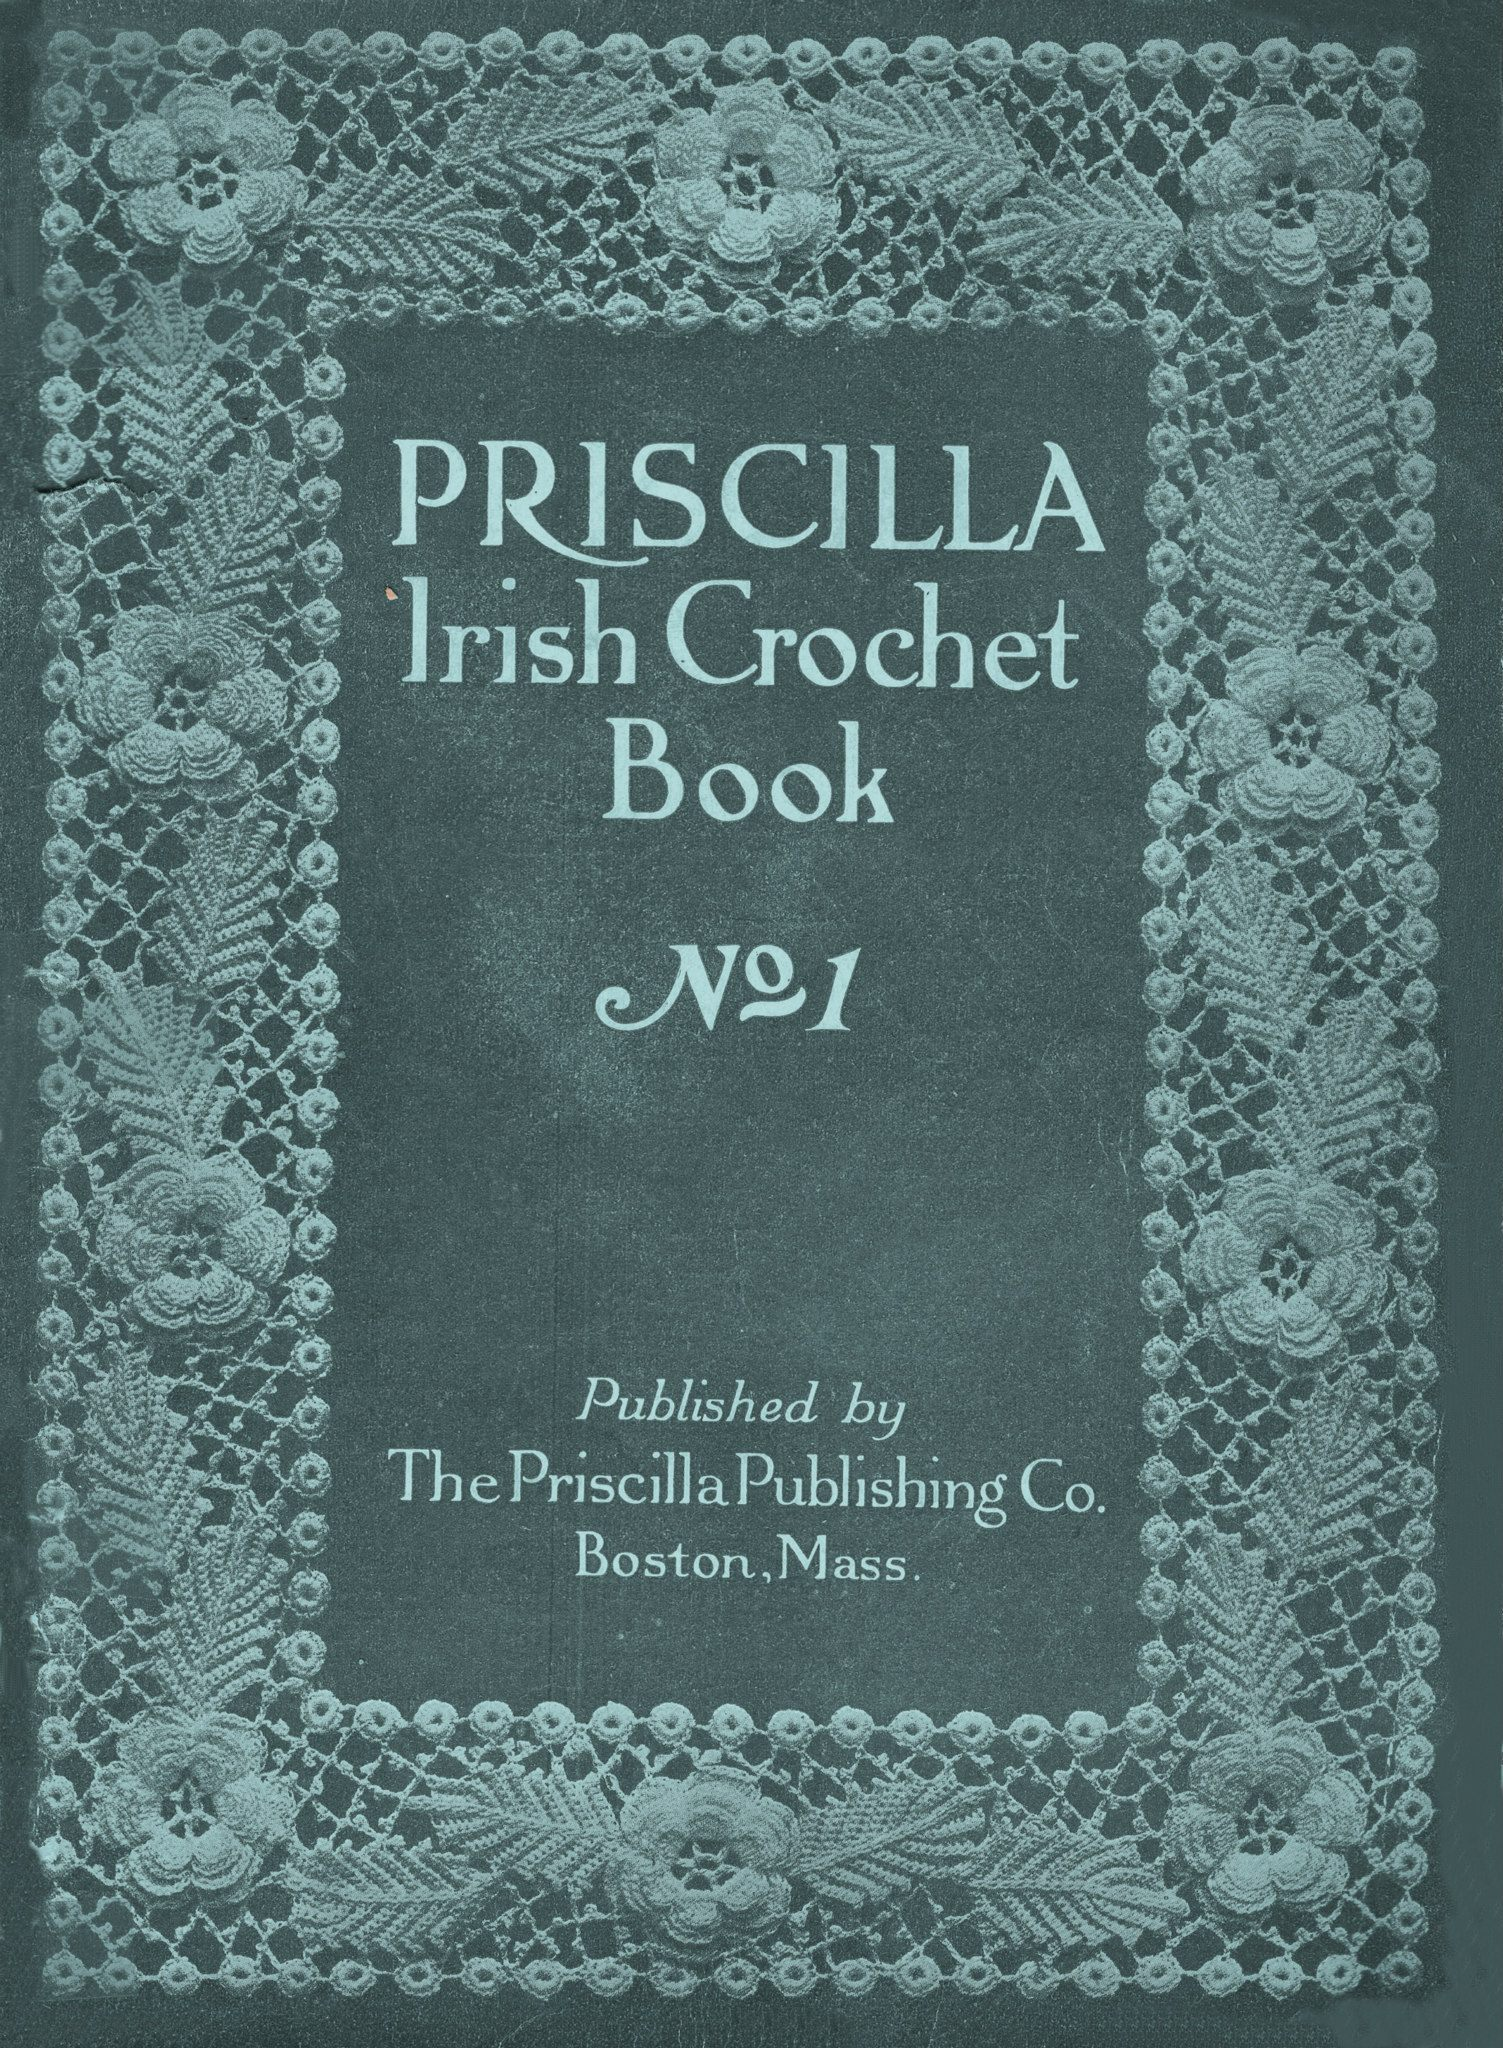 Crochet Book Review – Priscilla Irish Crochet Book 1 & 2